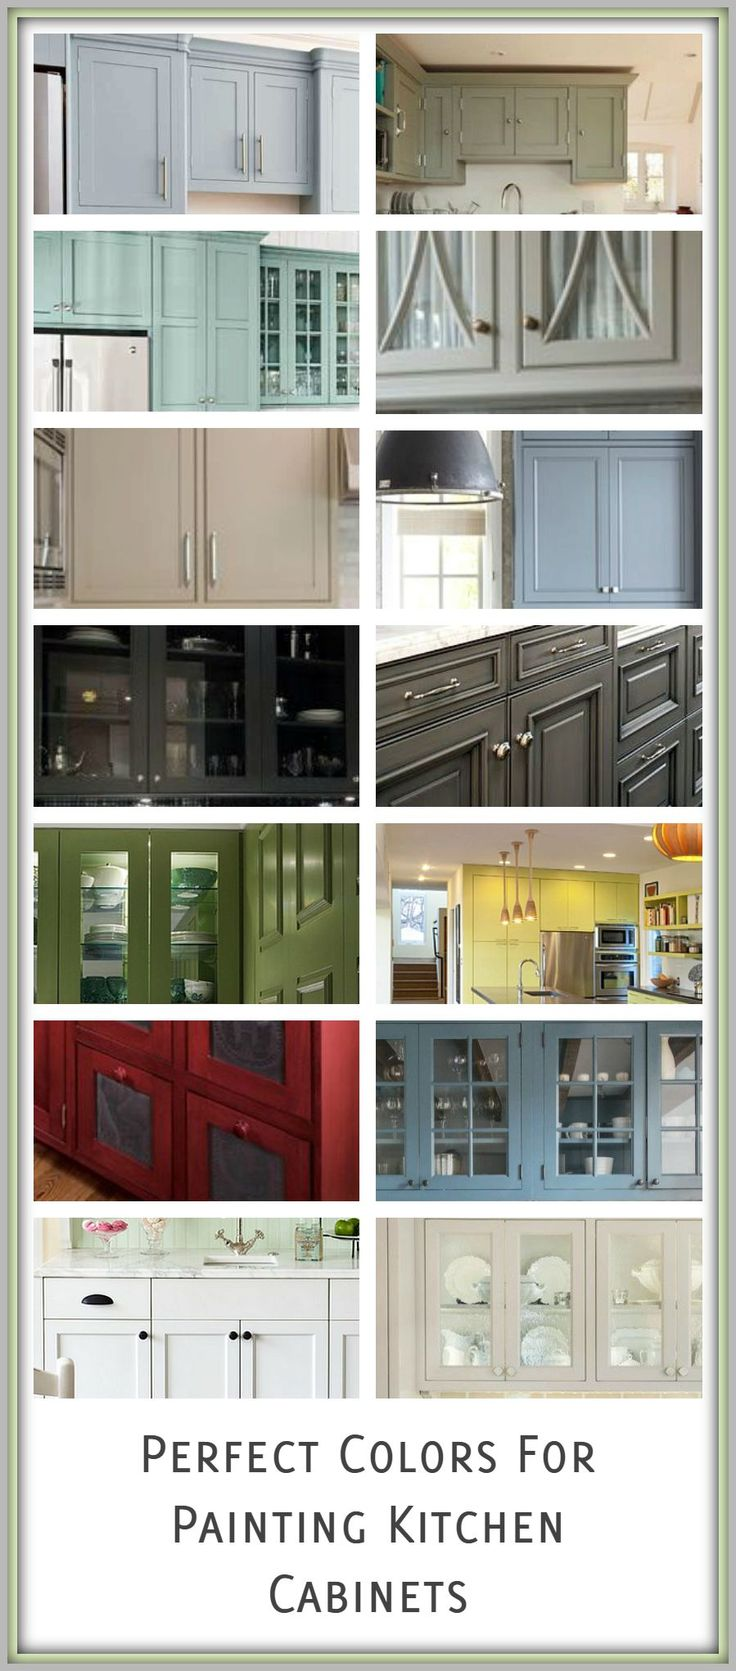 Best 170651 diy home decor images on pinterest diy and for Different kitchen colors